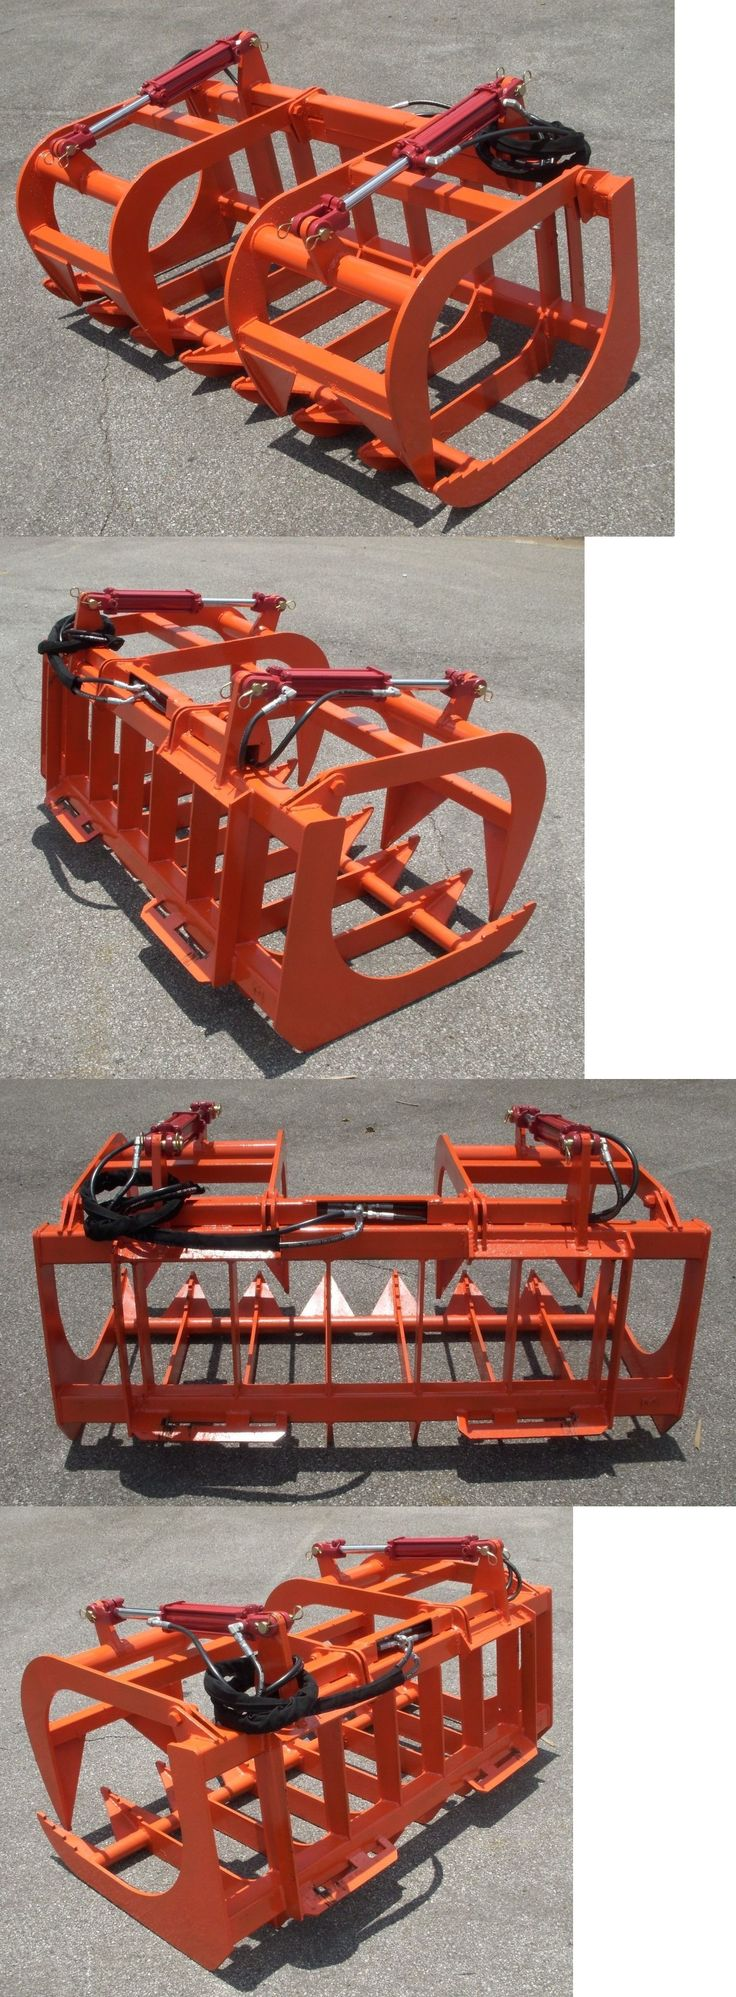 heavy equipment: Kubota Compact Tractor Loader Attachment - 60 Root Rake Grapple - Ship $199 BUY IT NOW ONLY: $1095.0